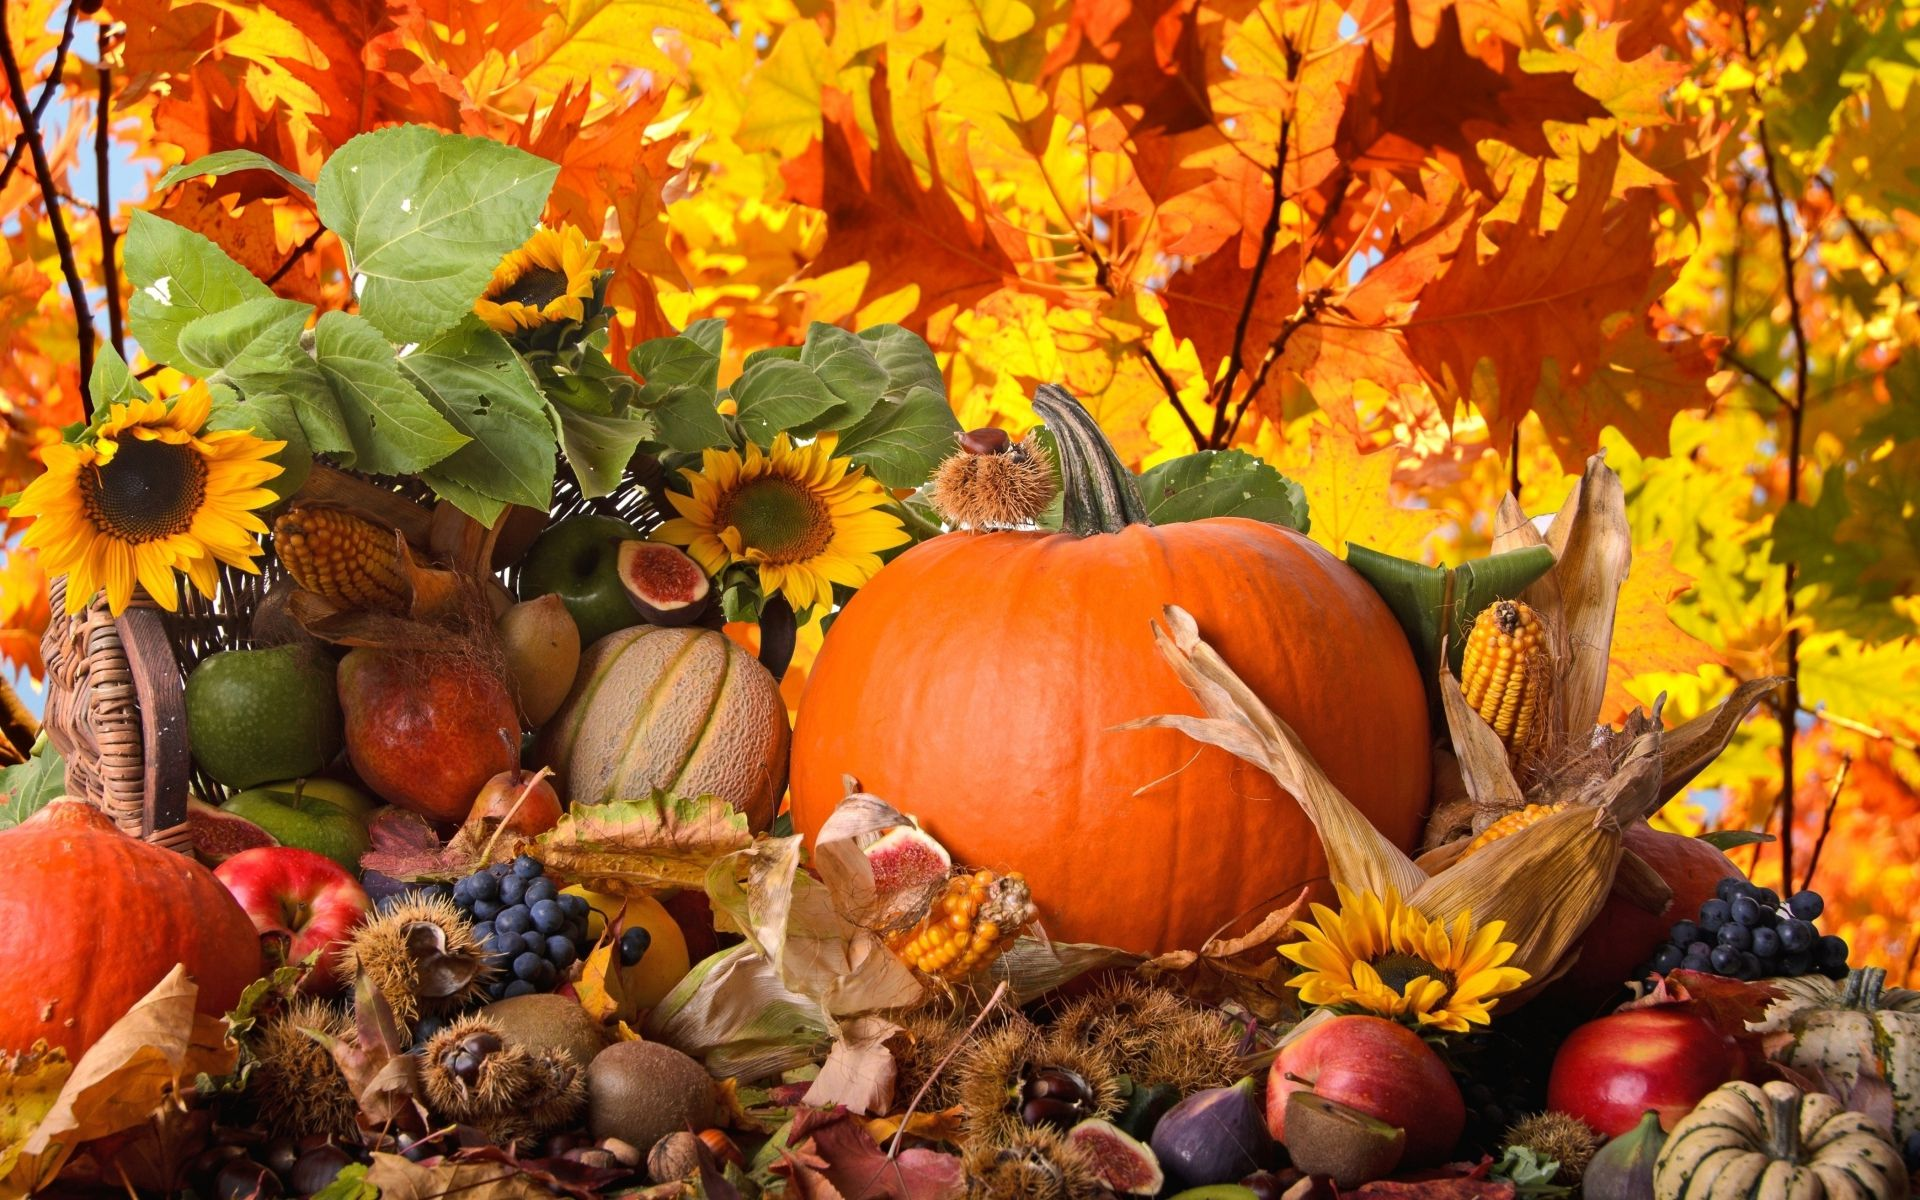 Thanksgiving Gourd Wallpapers   Top Thanksgiving Gourd 1920x1200